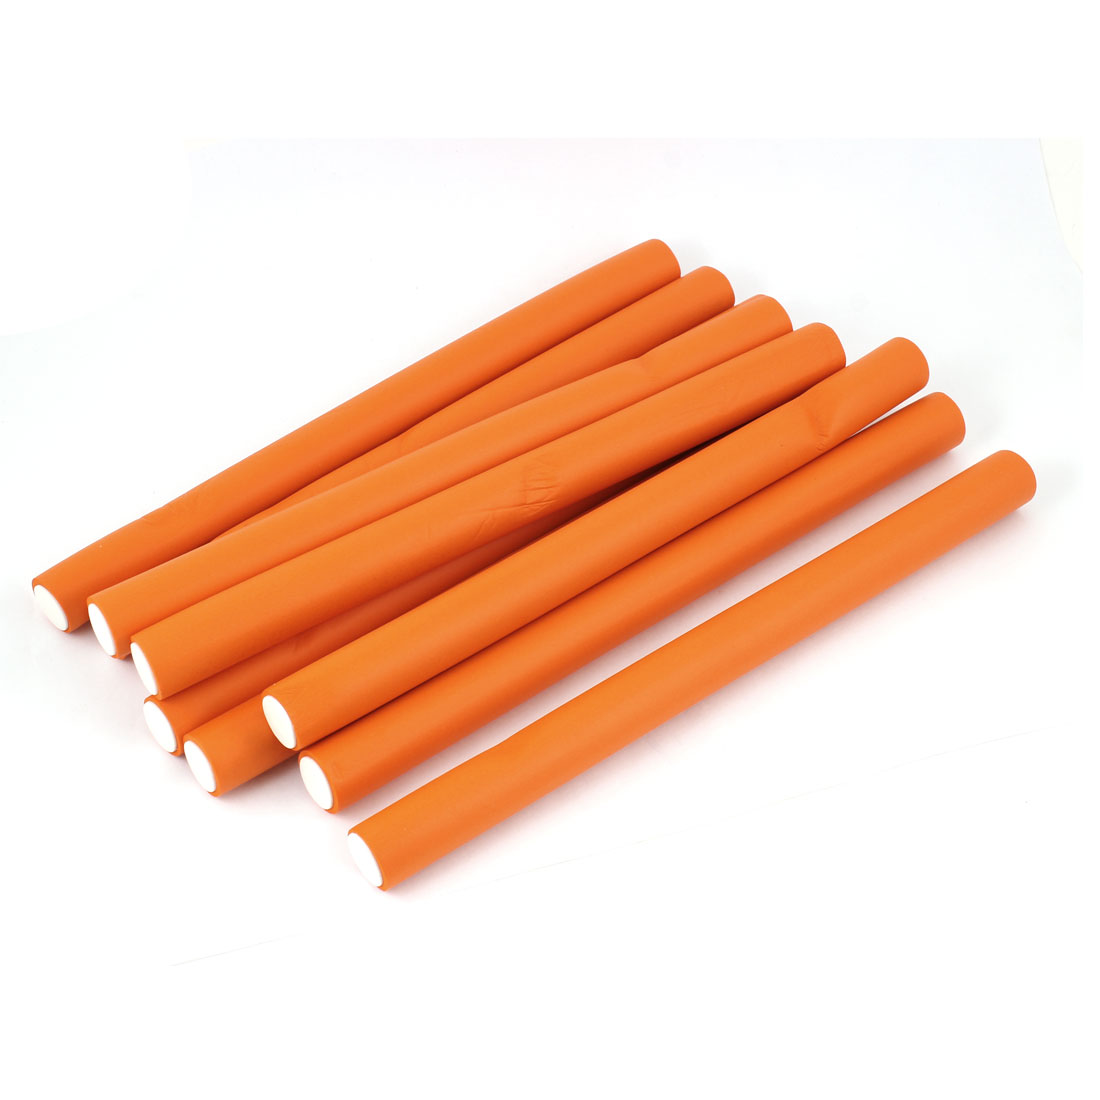 10pcs Hair Curler Makers Soft Foam DIY Styling Hair Rollers Orange